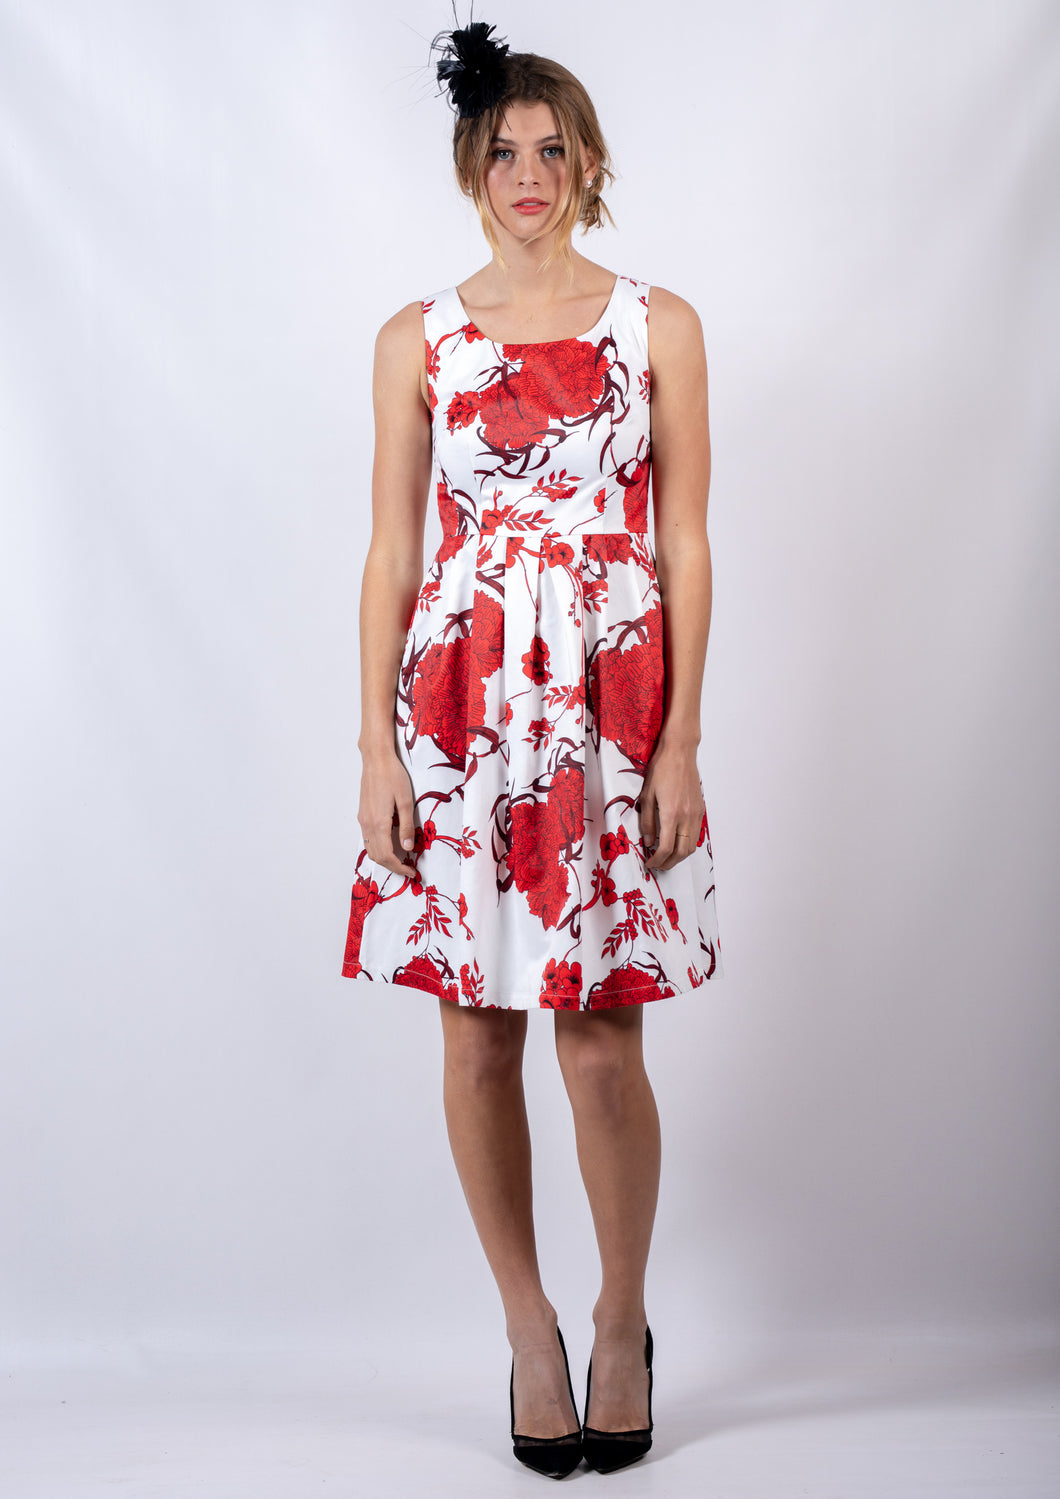 VS0006-24TB Red Floral Flowy Dress (Pack)